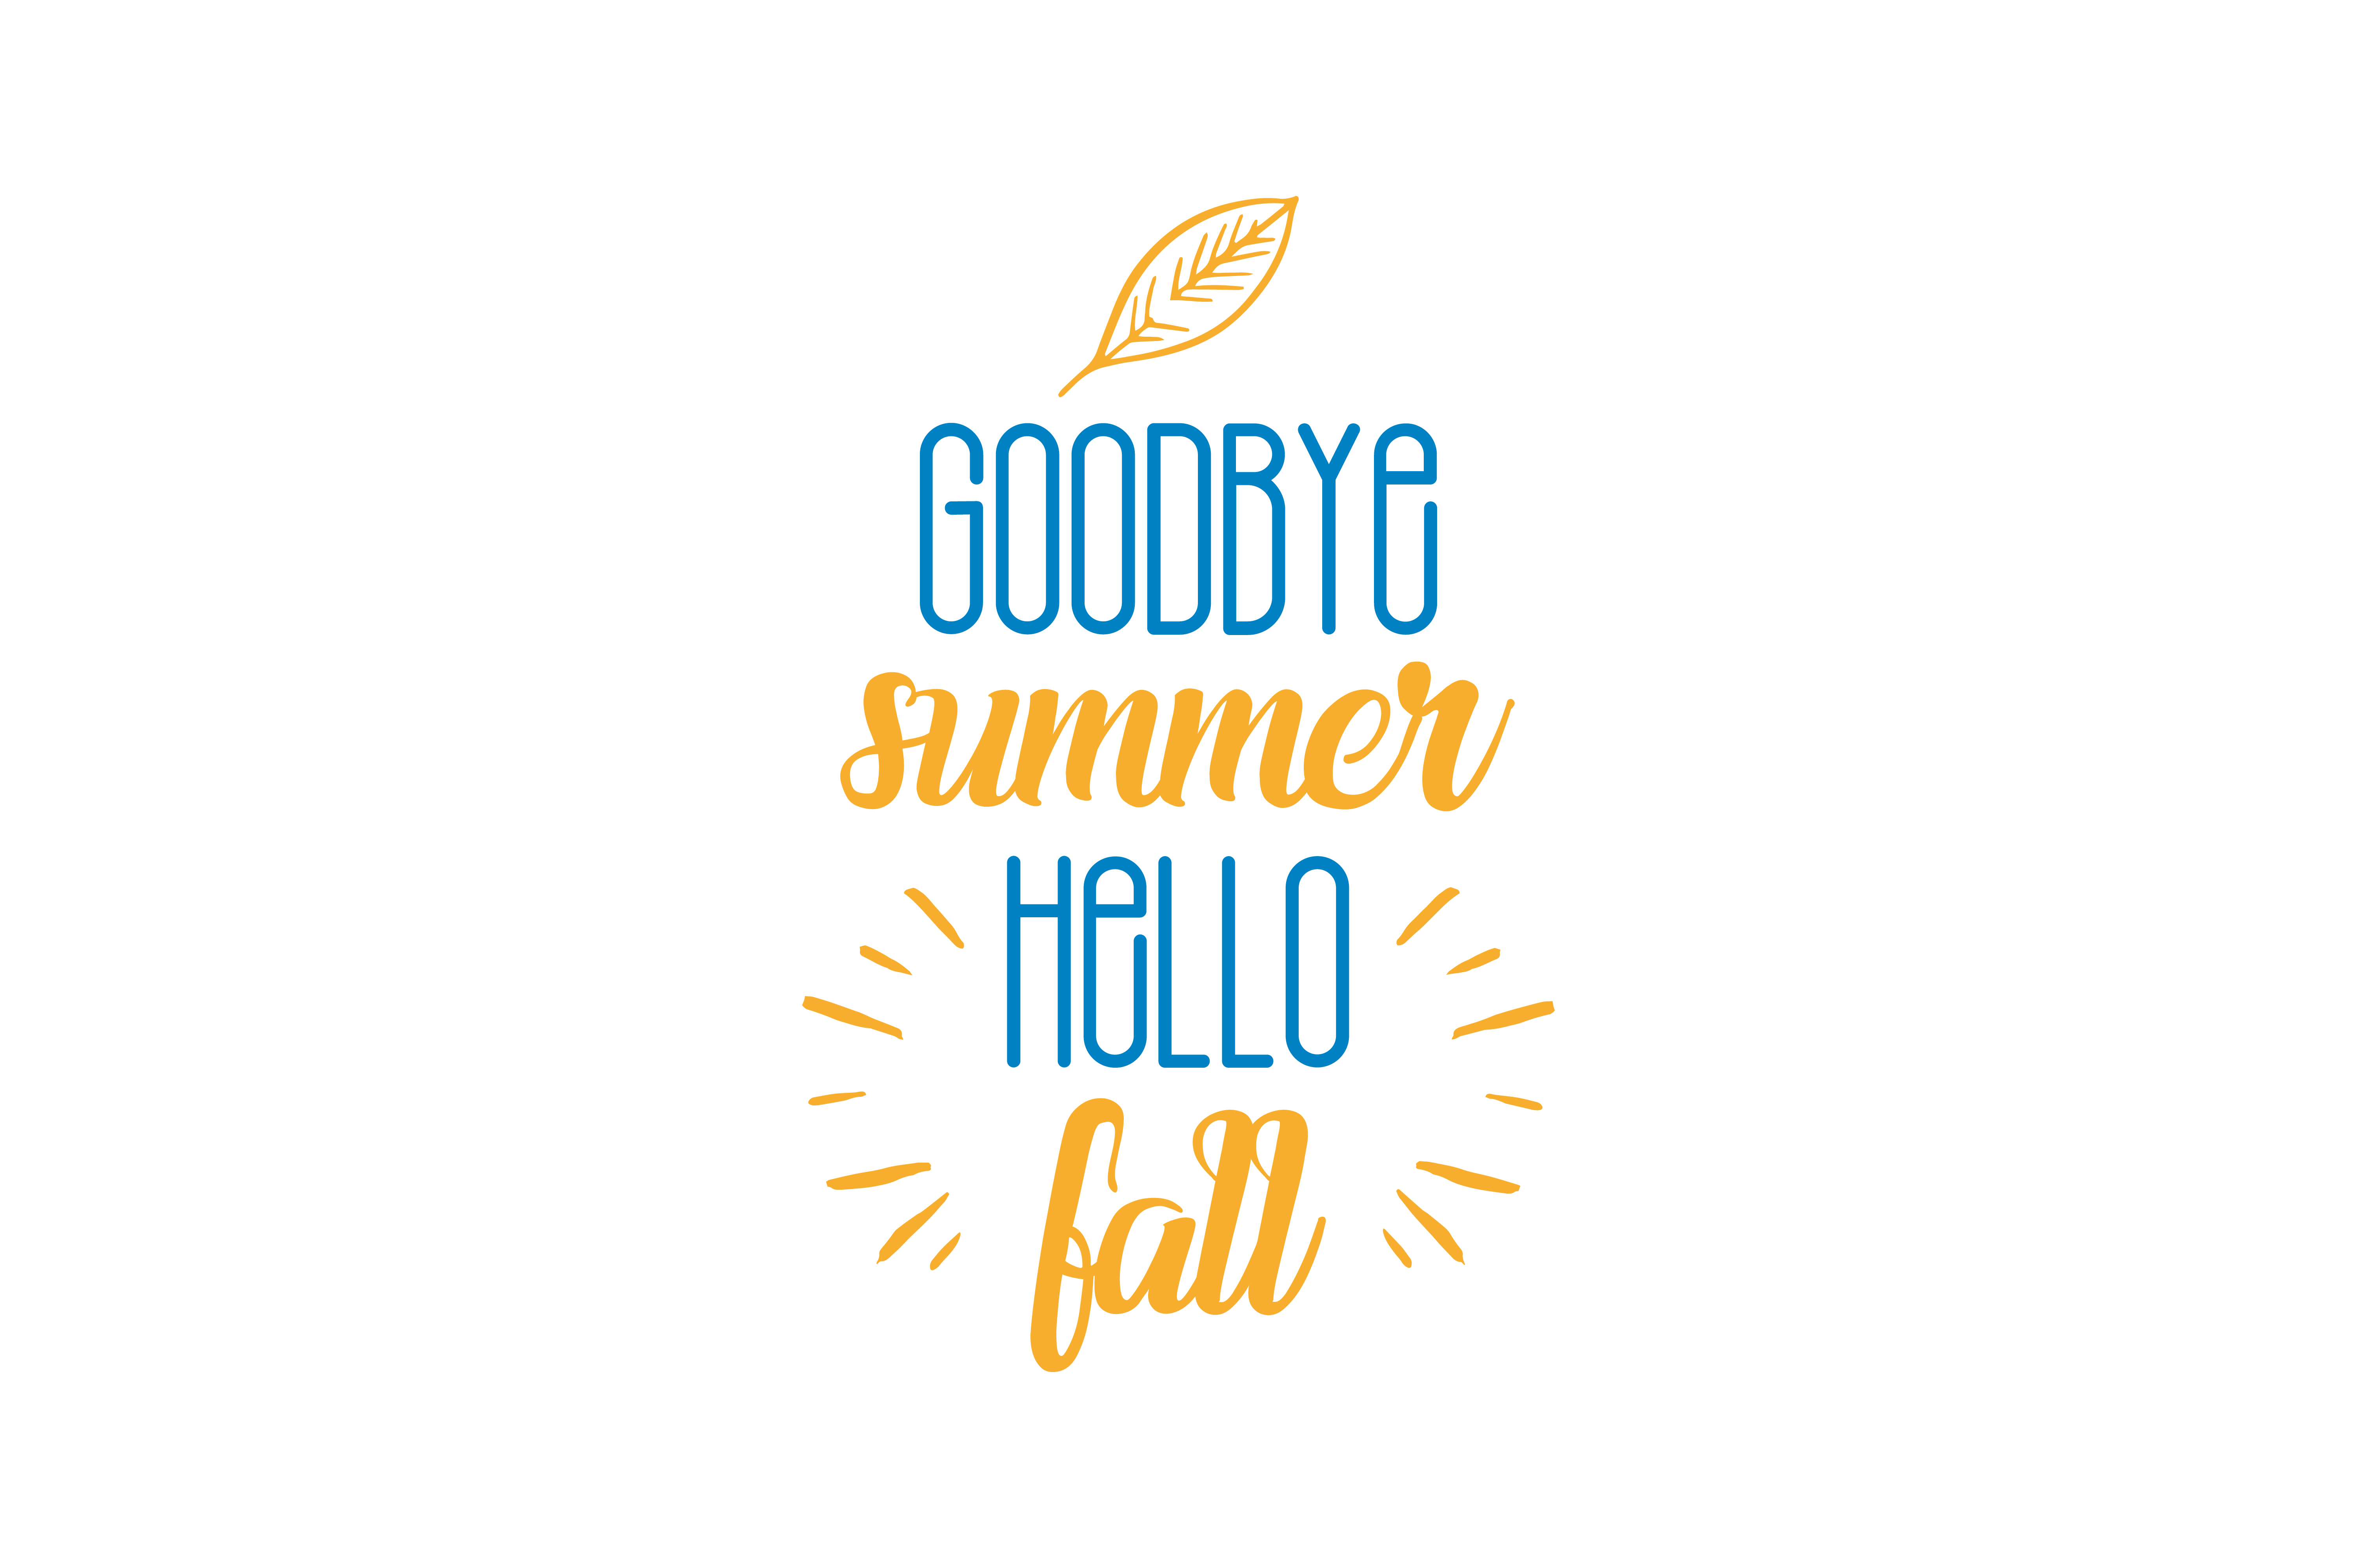 Download Free Goodbye Summer Hello Fall Quote Svg Cut Graphic By Thelucky for Cricut Explore, Silhouette and other cutting machines.